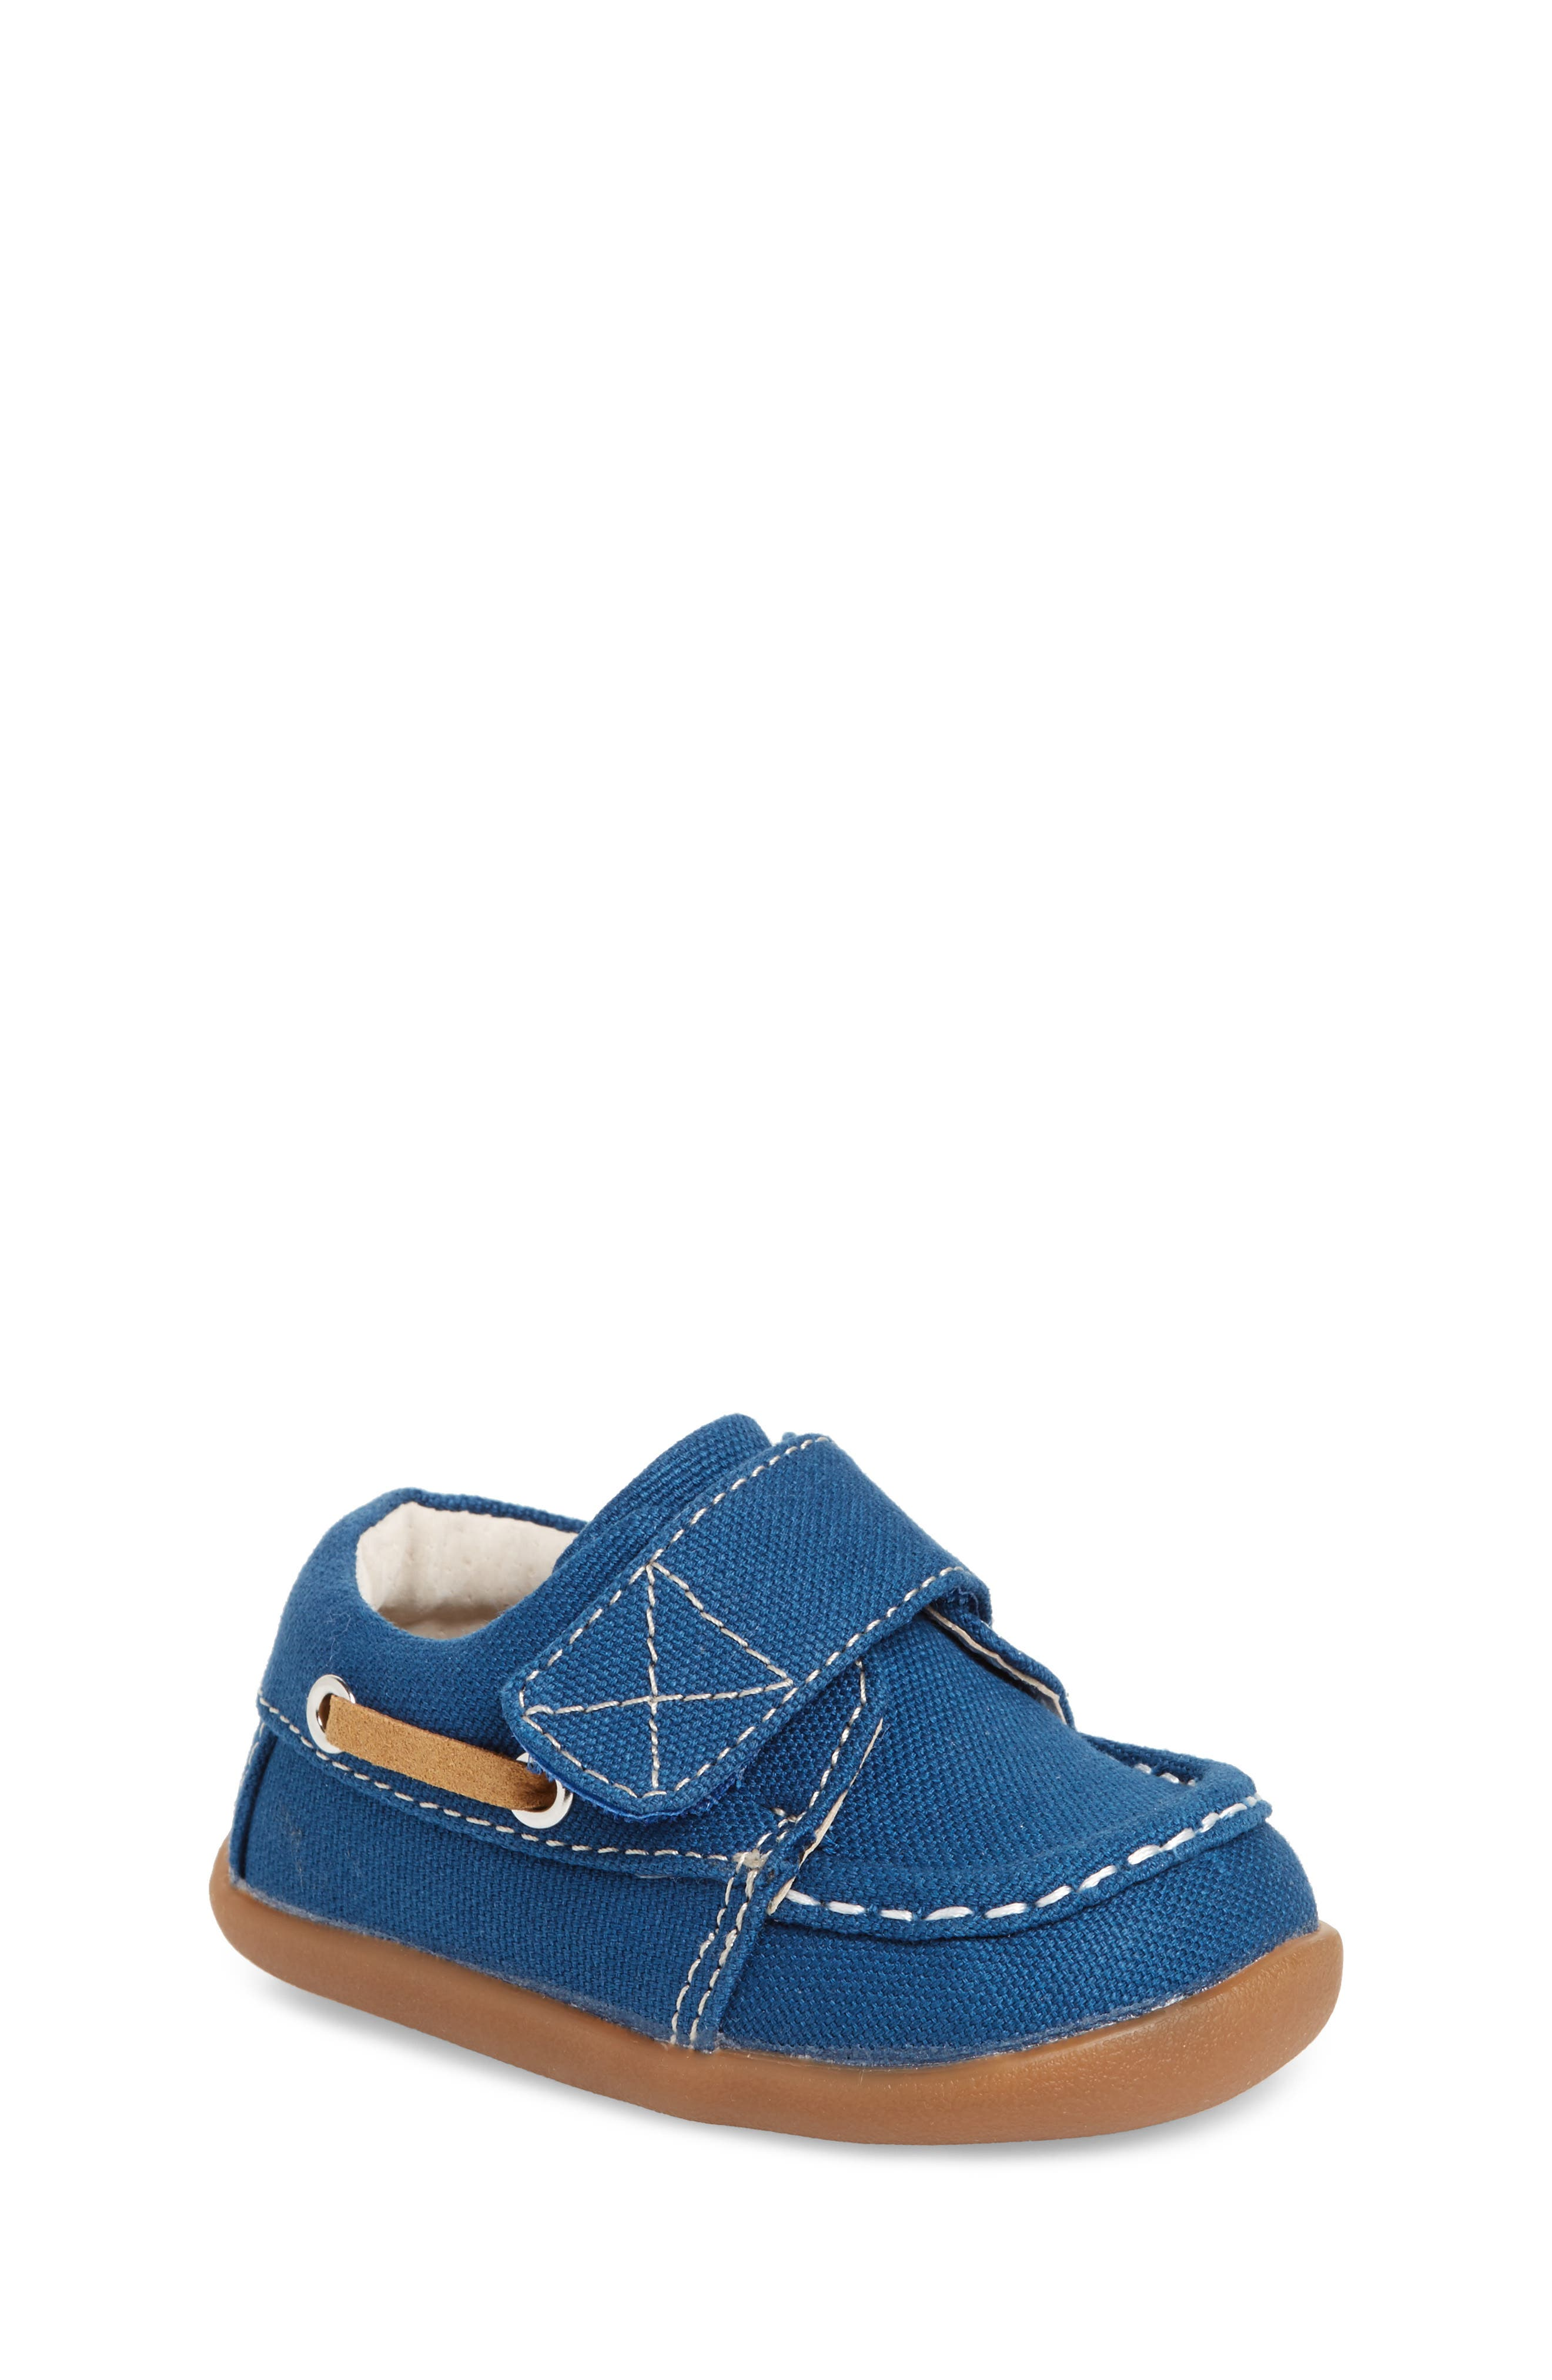 Alternate Image 1 Selected - See Kai Run Arthur Sneaker (Baby & Walker)